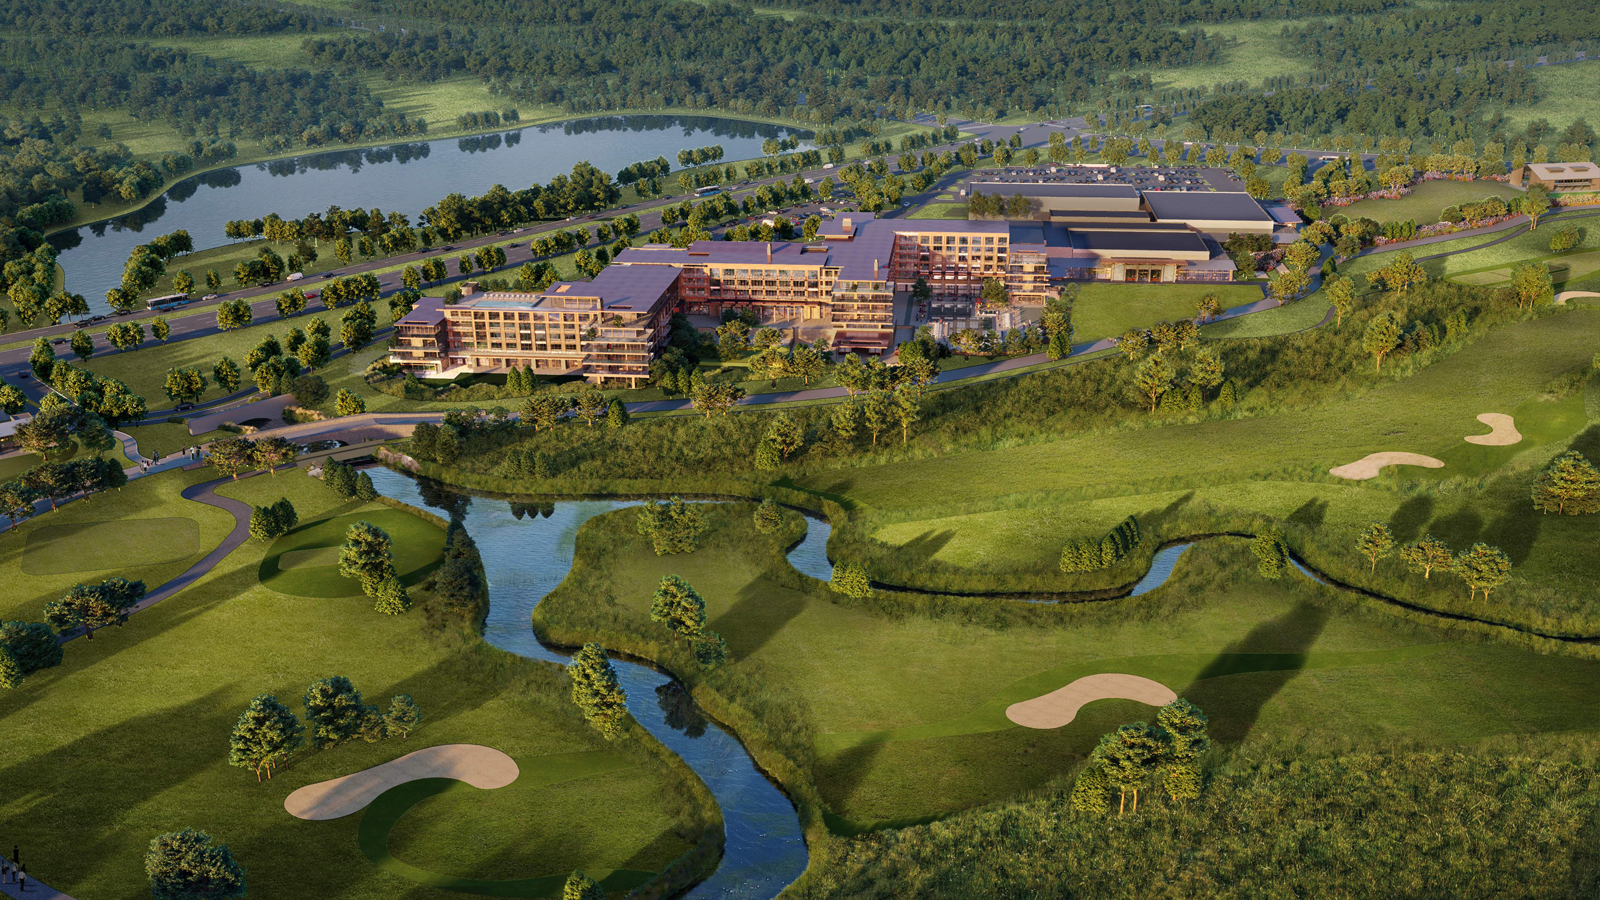 A rendering of the resort seen from above.